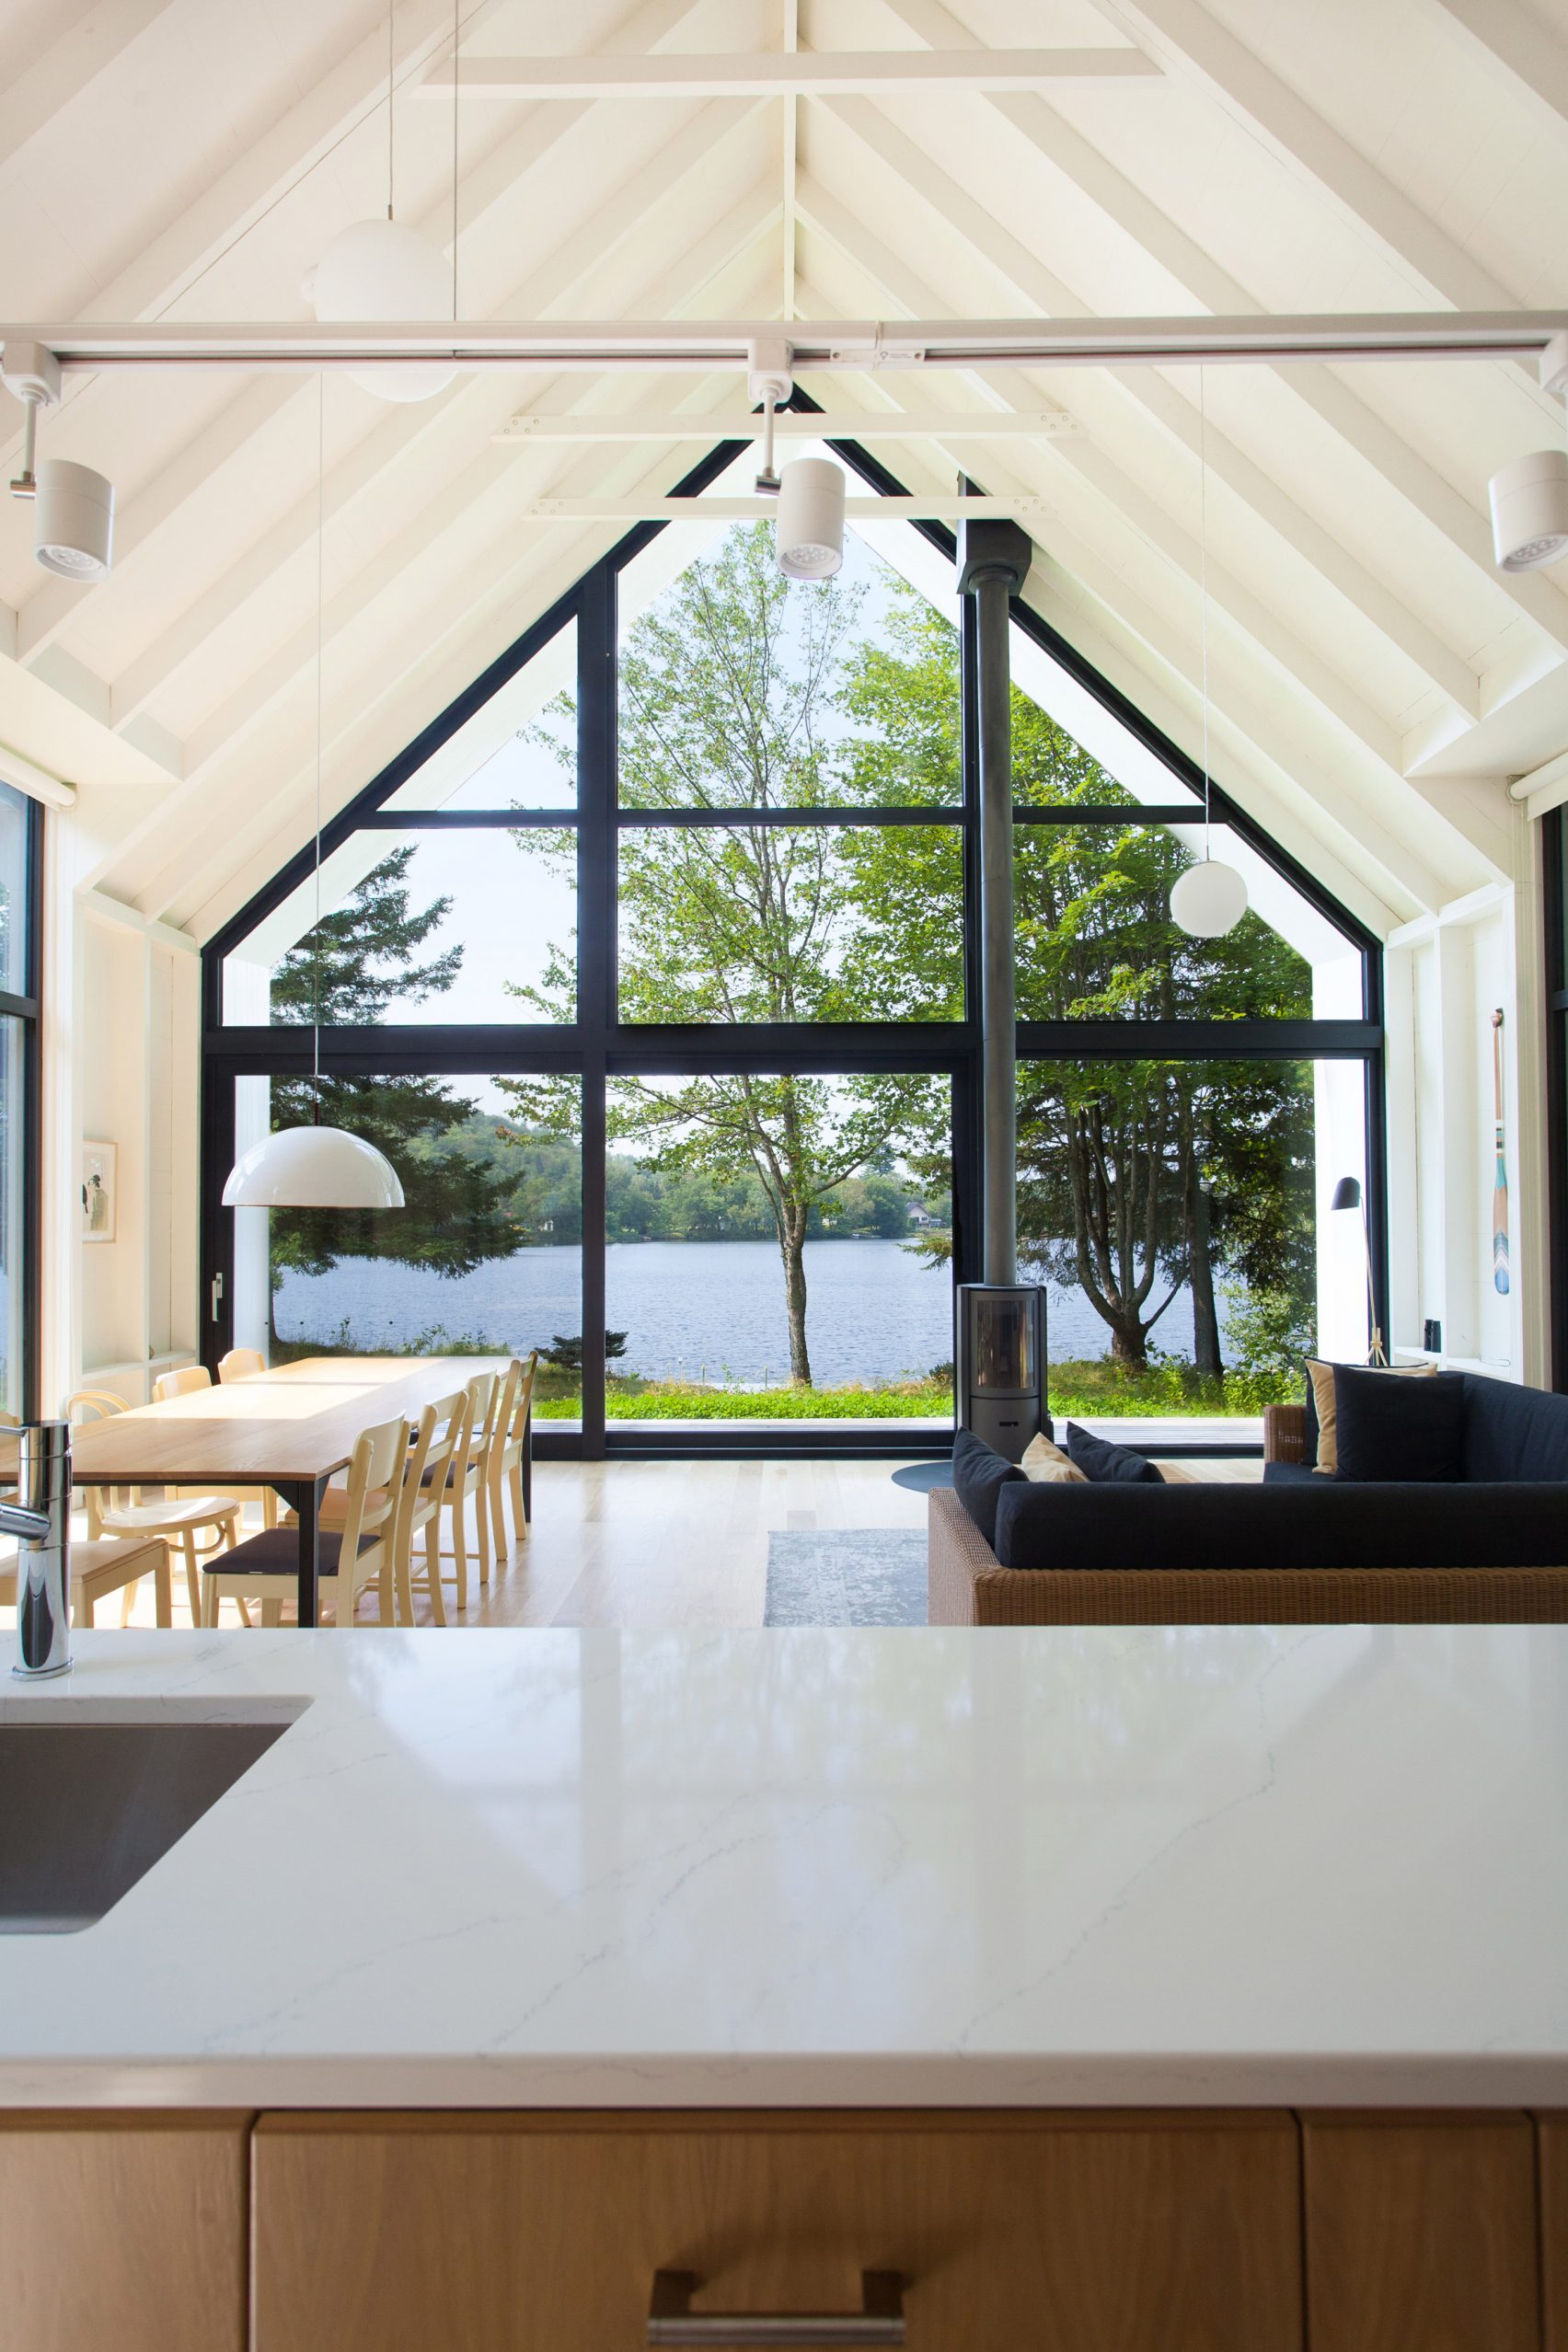 window-on-the-lake-yh2-architecture-residential-canada_dezeen_2364_col_1-1704x2556.jpg